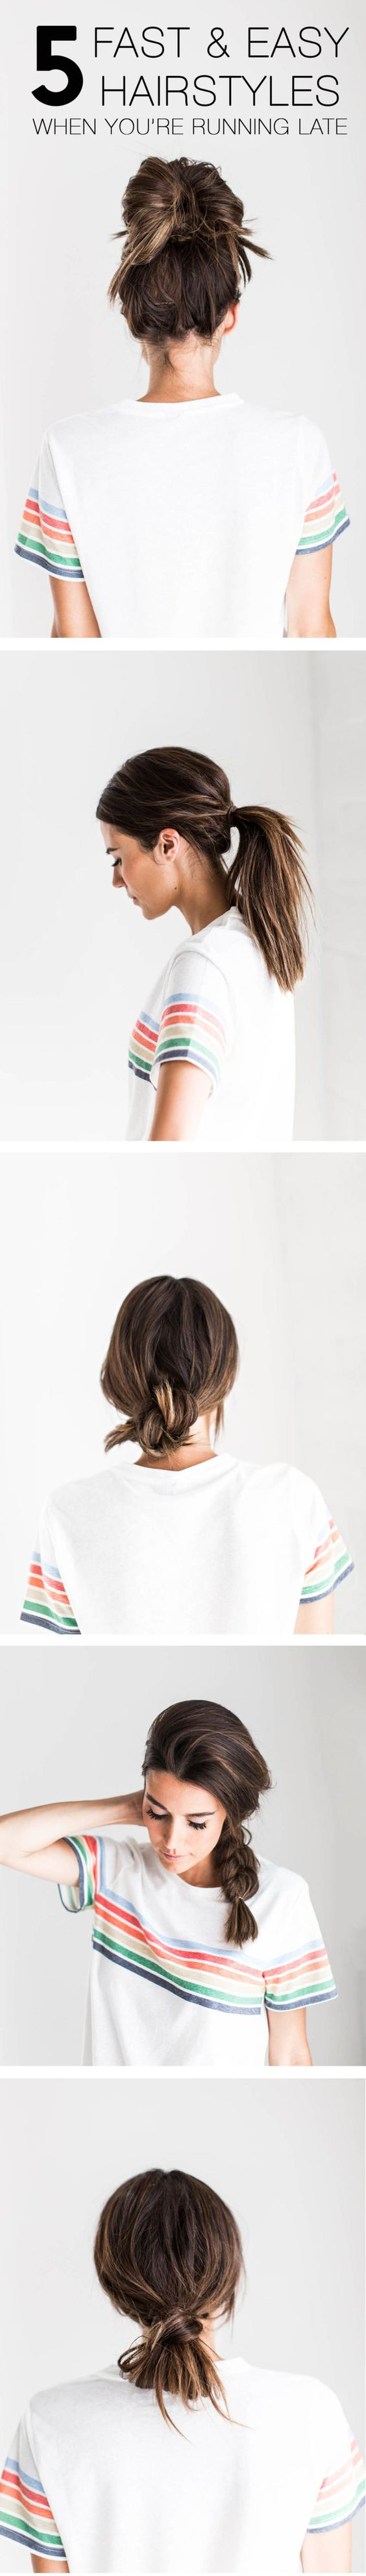 Coiffures En Dsordre Tre Enretard And Cheveux Course On Pinterest